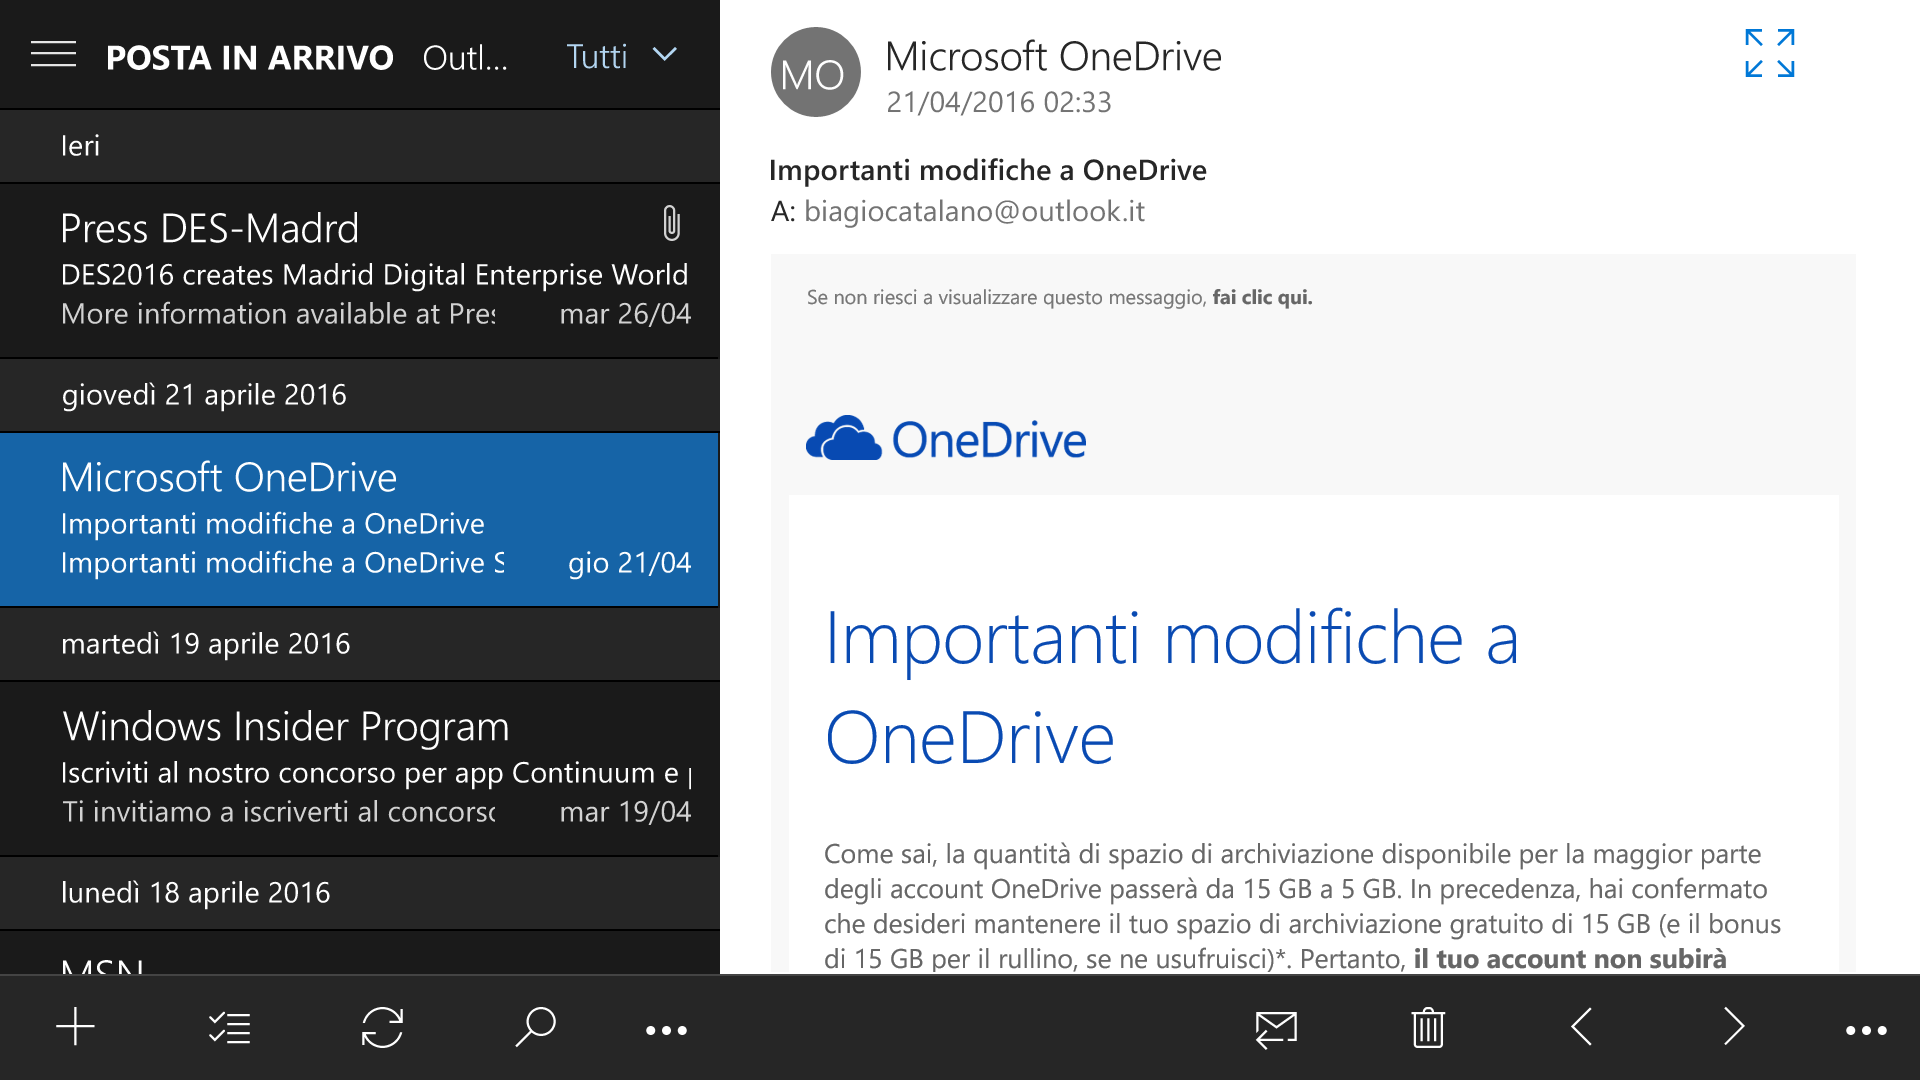 Posta Outlook - Windows 10 Mobile 14332.1001